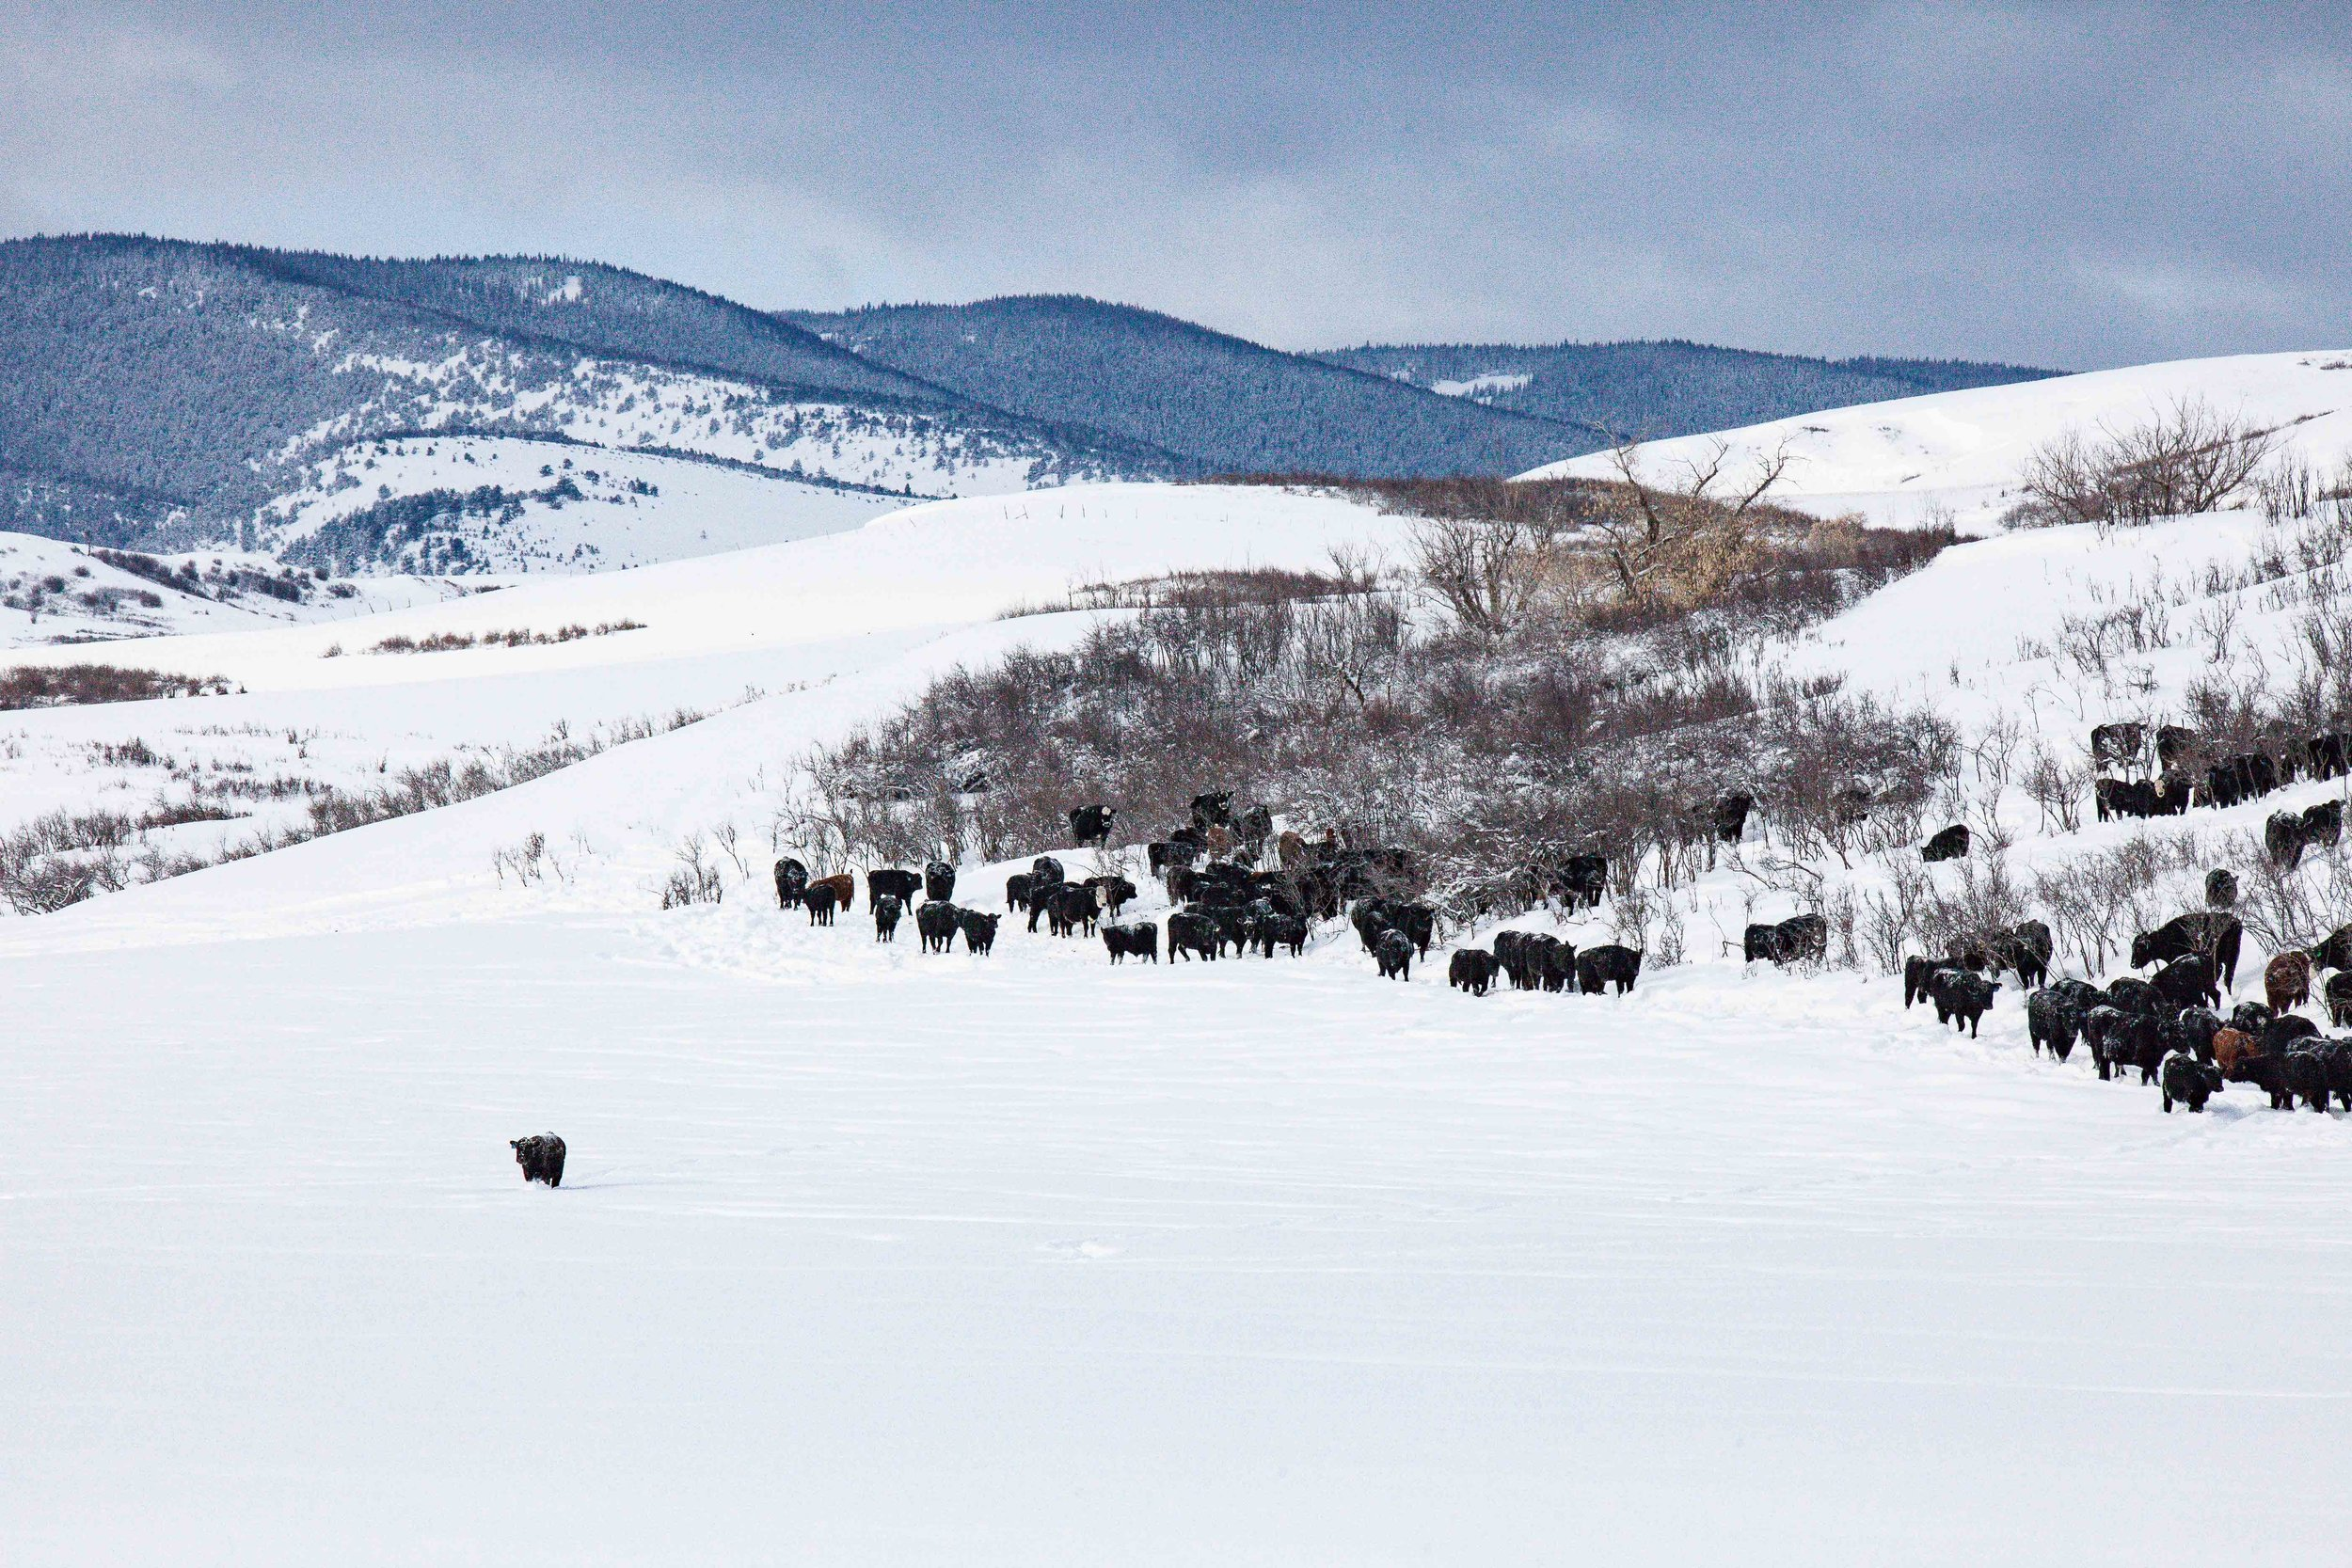 Kerns Ranch Cattle - Sheridan Wyoming - Double Rafter Cattle Drives